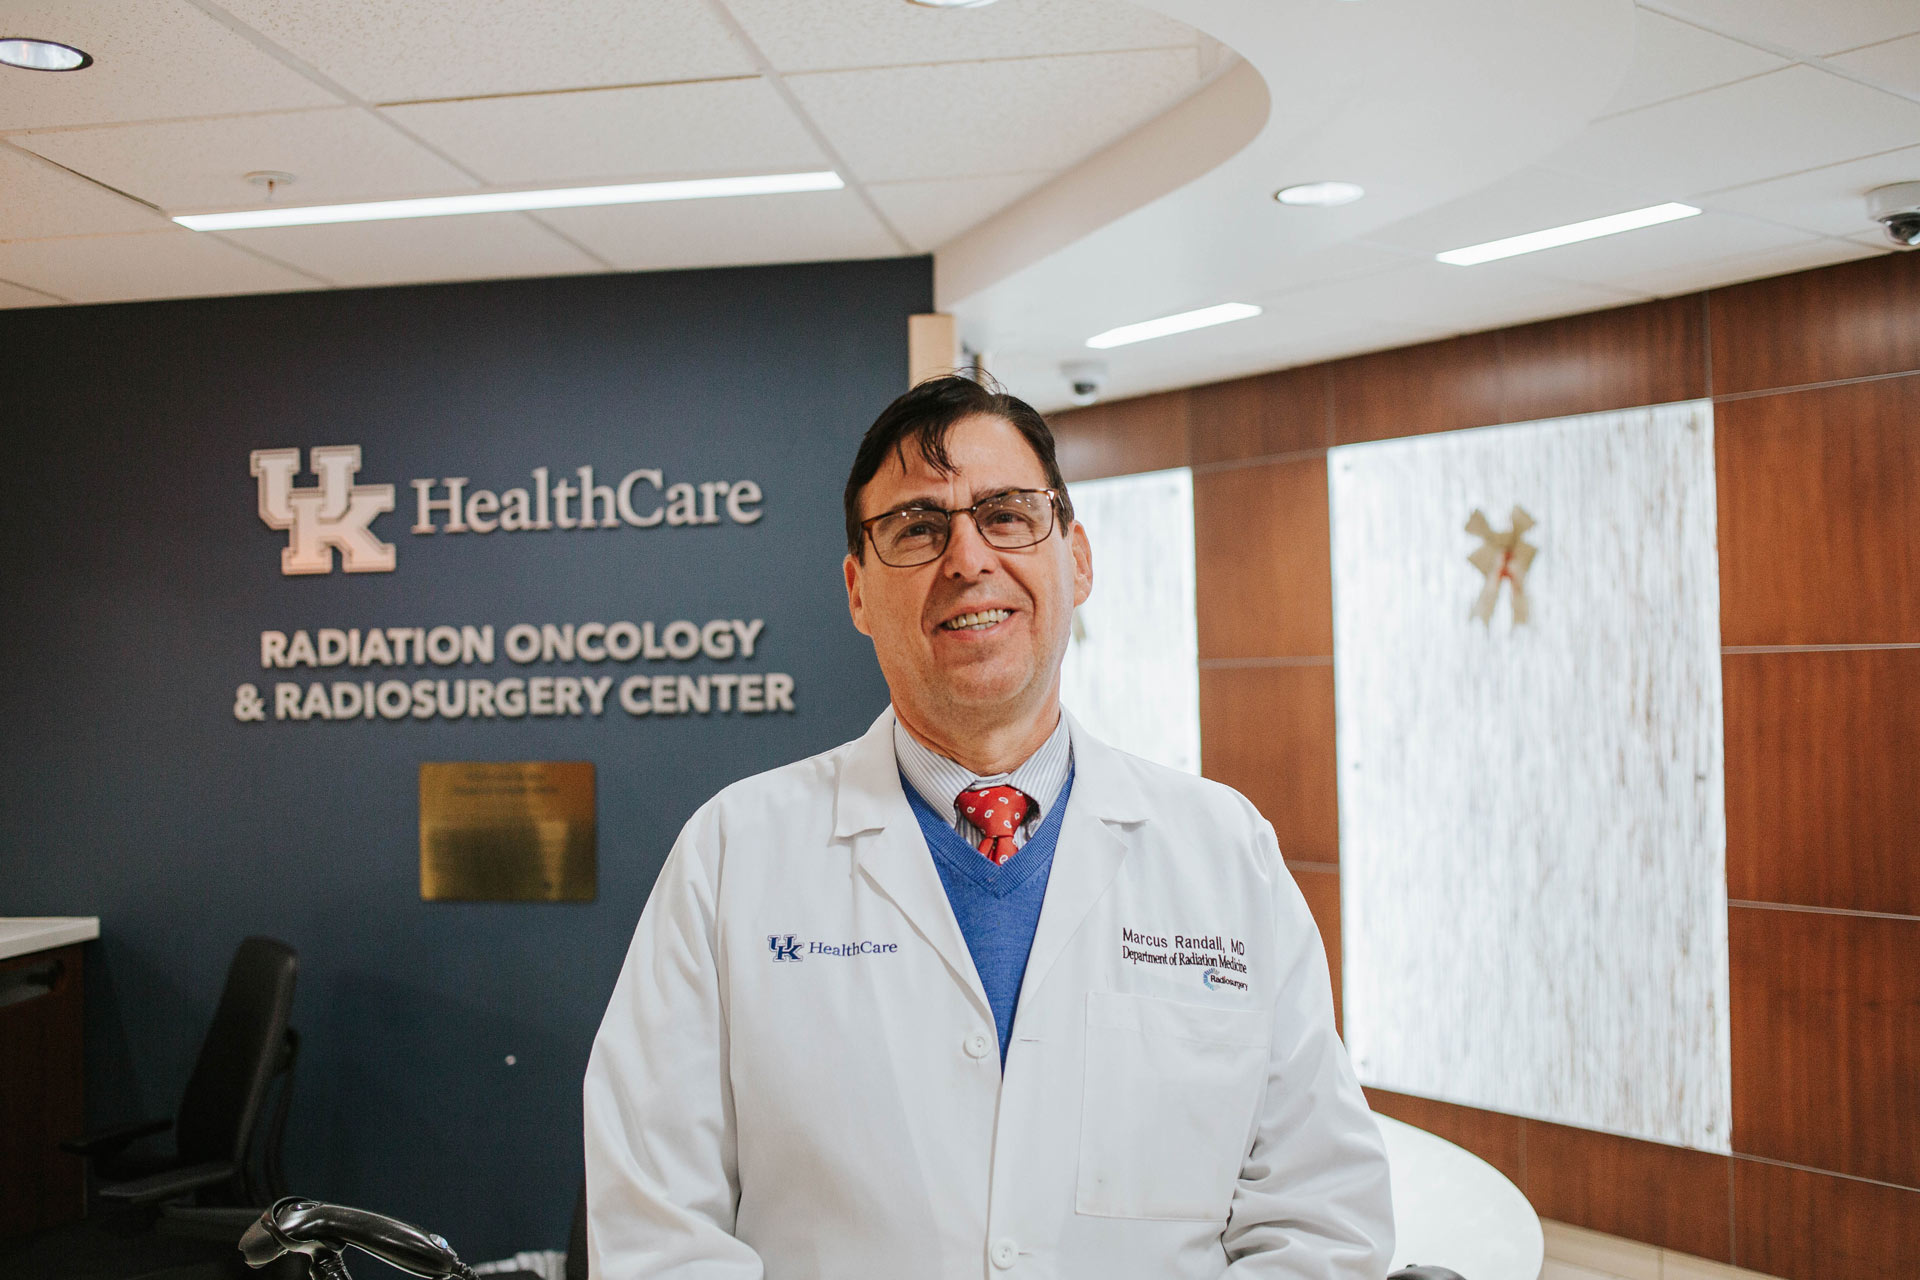 Dr. Marcus Randall, a middle-aged white man with black hair, is standing in the UK HealthCare Radiation Oncology and Radiosurgery Center. He is wearing a white doctor's coat, a blue sweater, a red tie with white polka dots and spectacles.